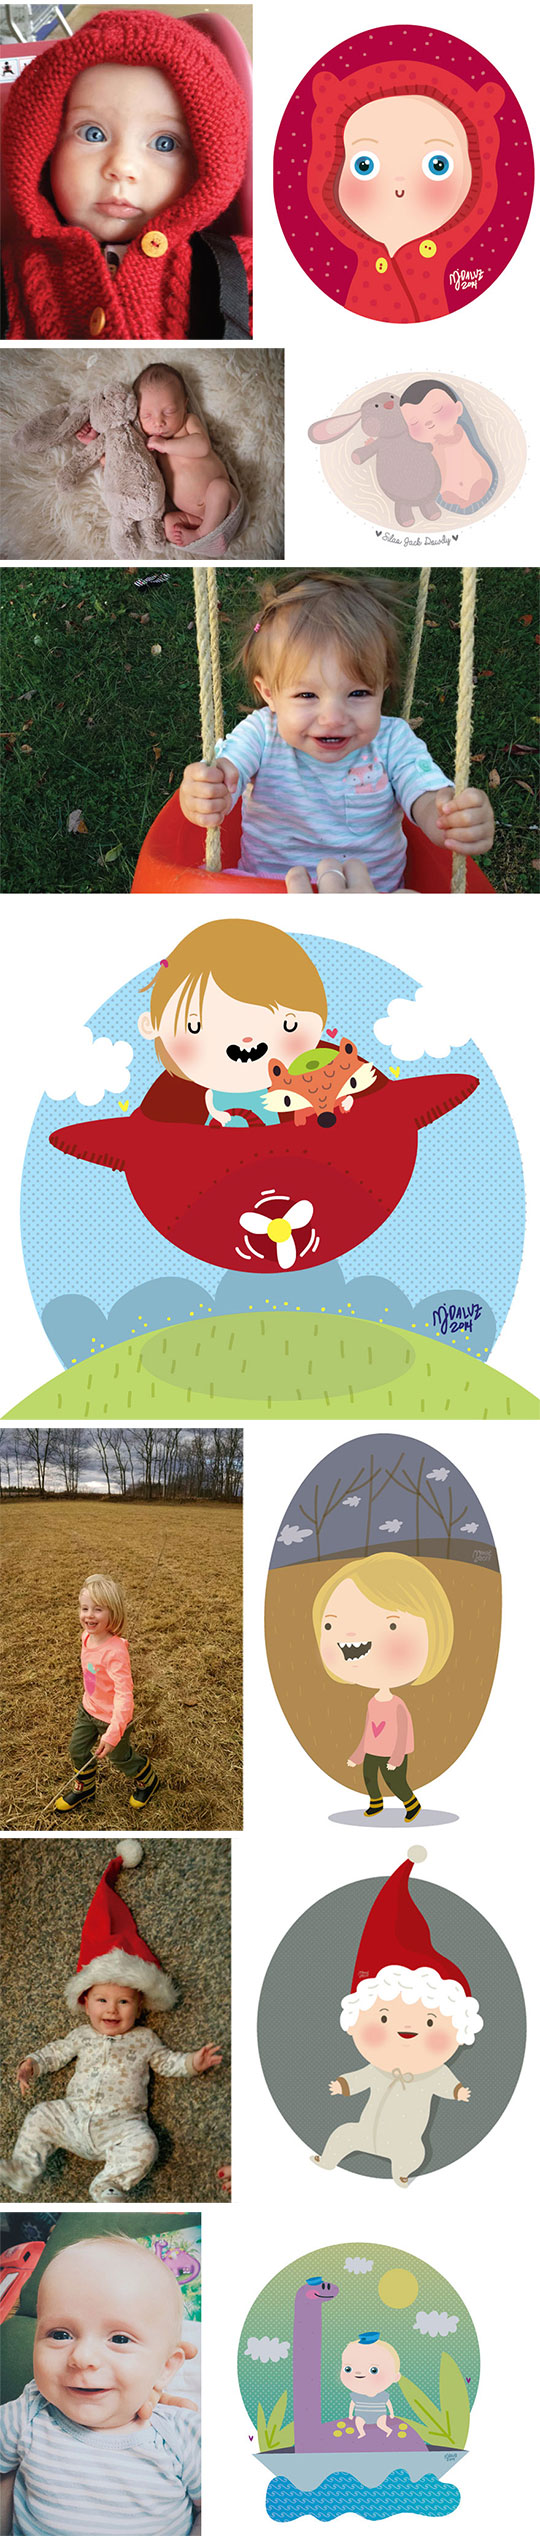 cool-baby-pictures-turned-cartoons